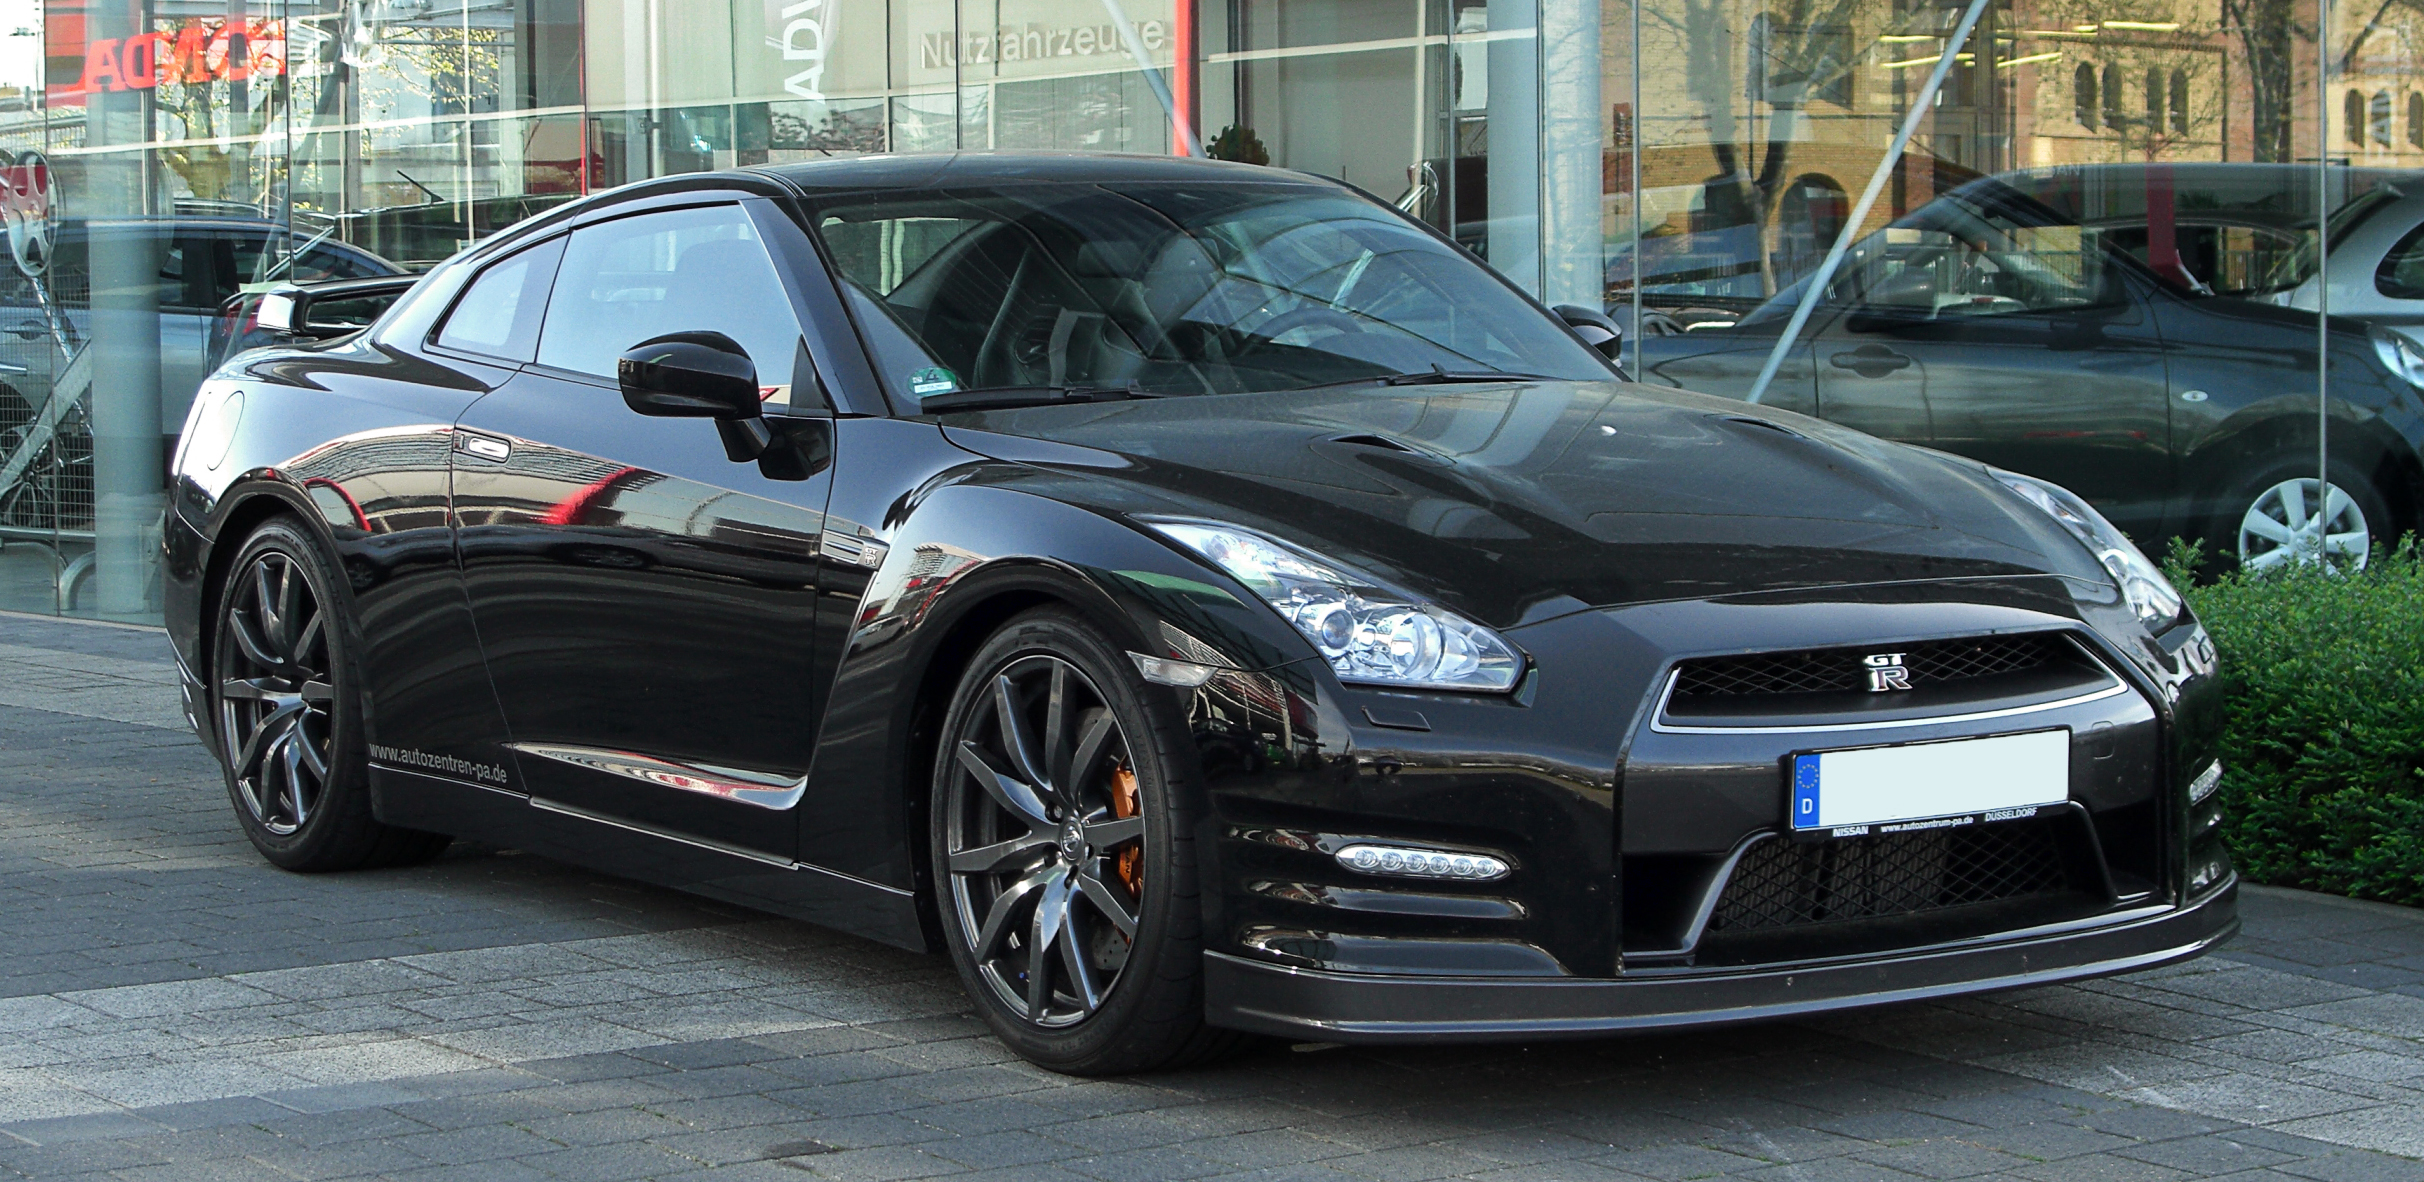 Full Hd Black Cars Wallpapers File Nissan Gt R Facelift Frontansicht 9 April 2011